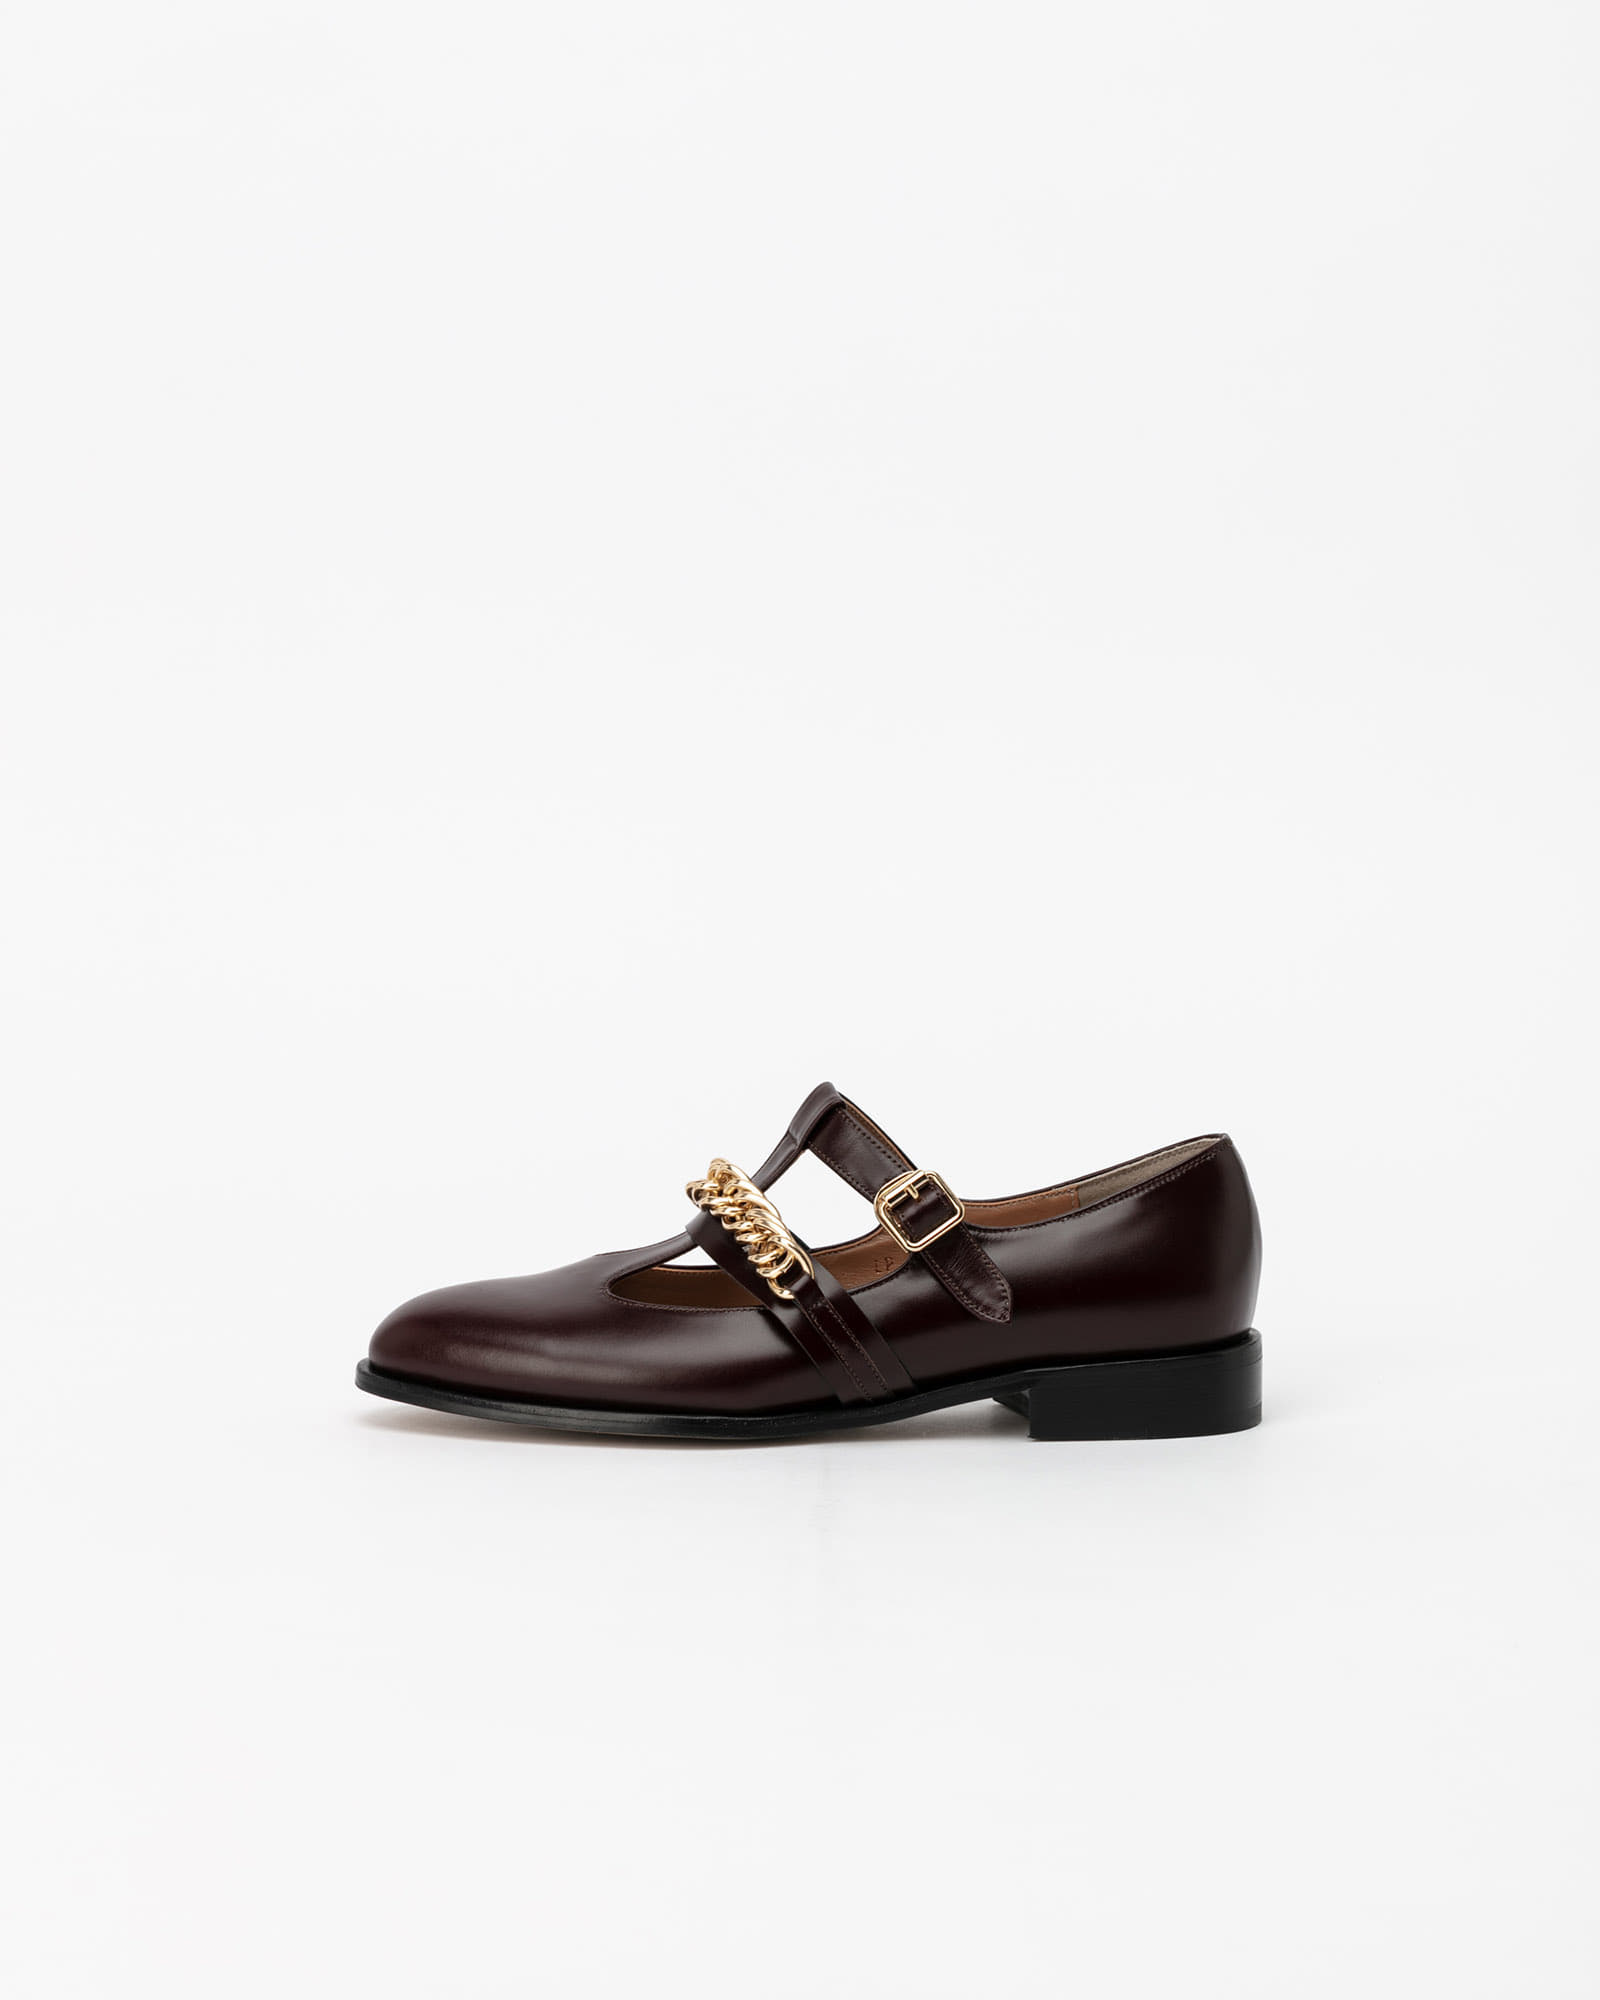 Hellen Chained Loafers in Cherry Brown